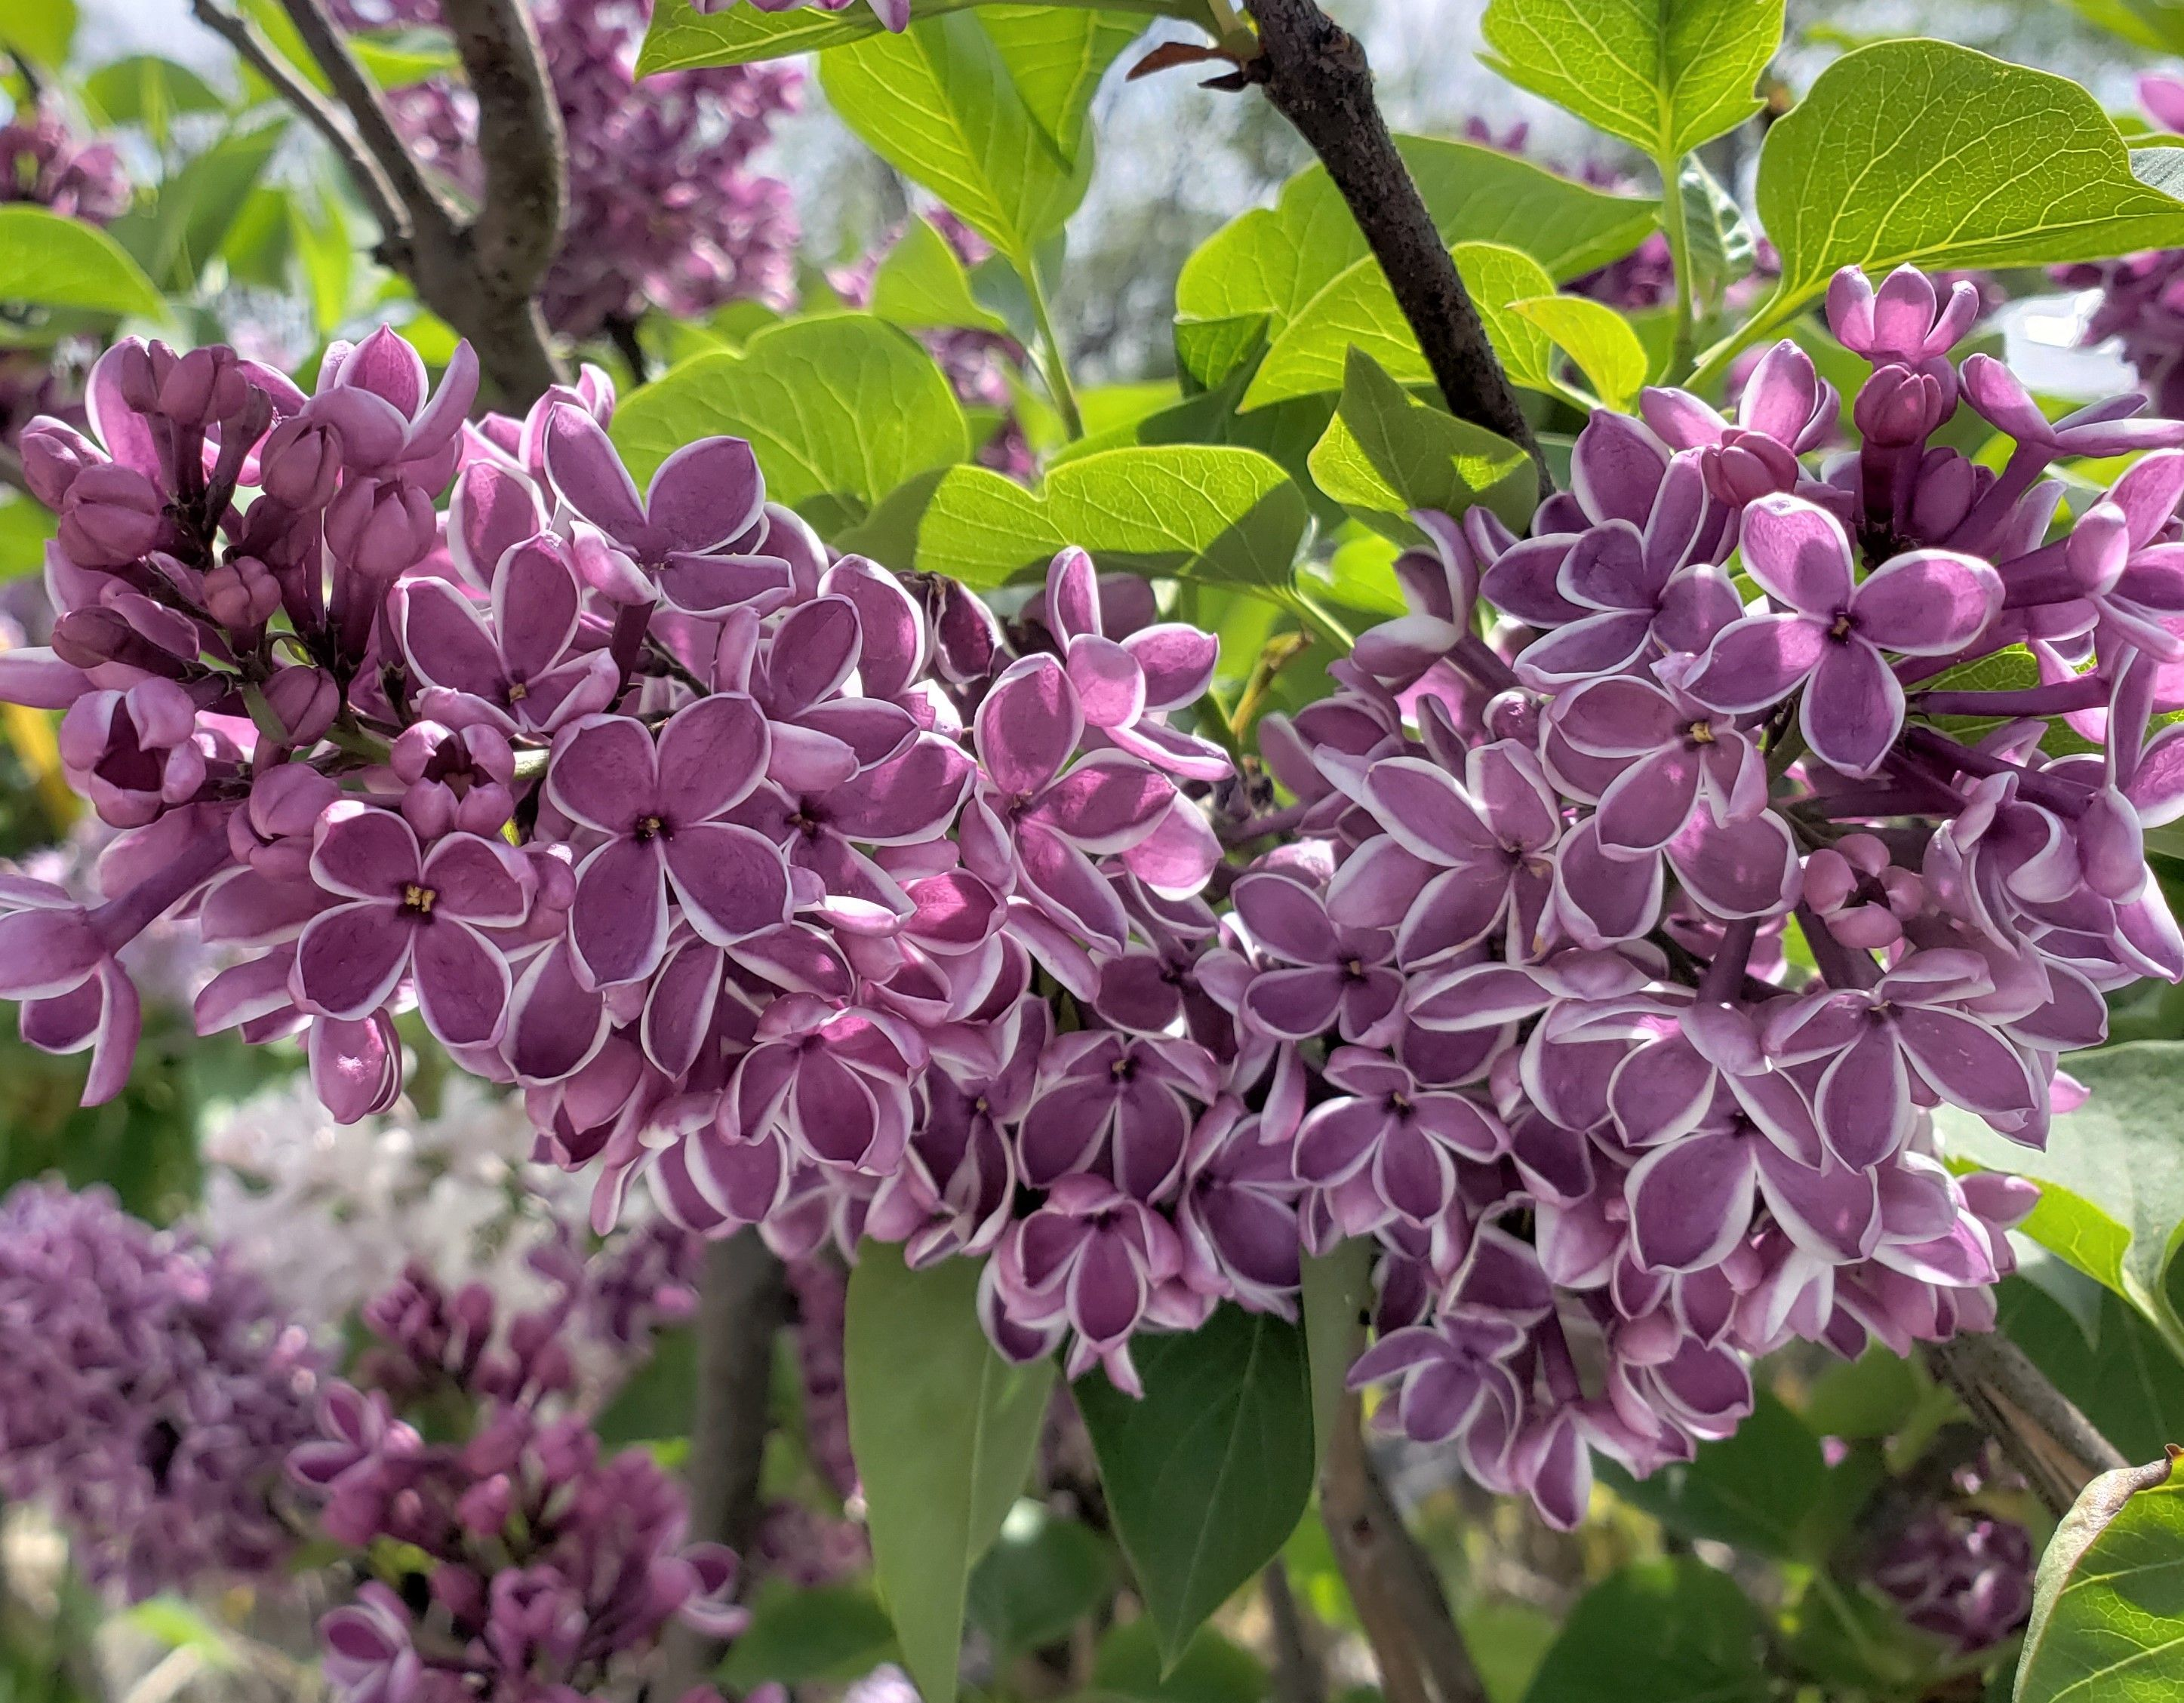 lilac blooms bring heavenly fragrance to the